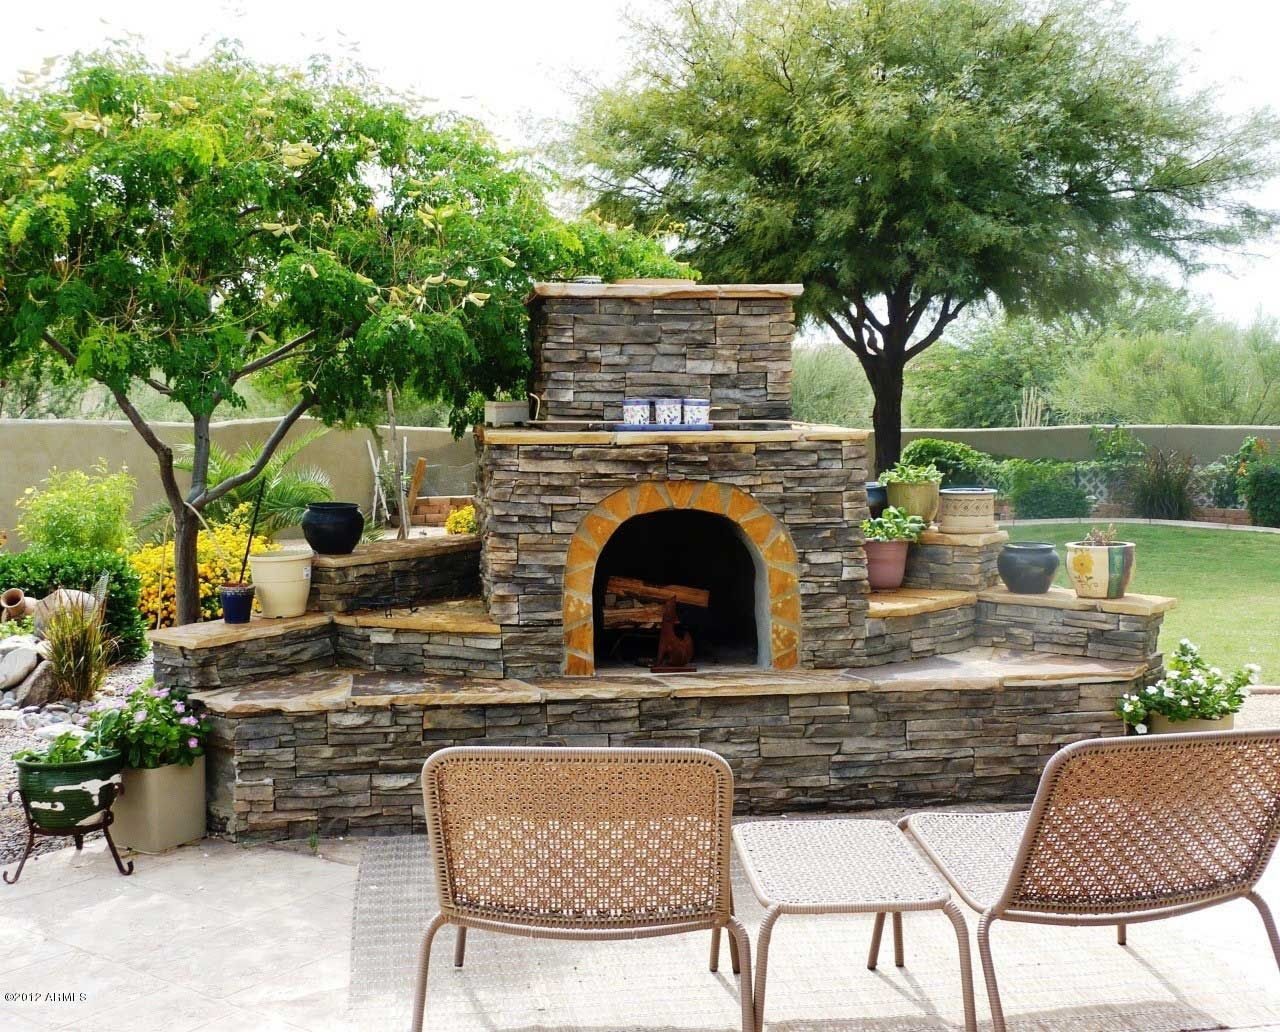 Garden Fireplace Design Image Gorgeous Outdoor Patio And Fireplace Ideas  Dream Home  Pinterest . Inspiration